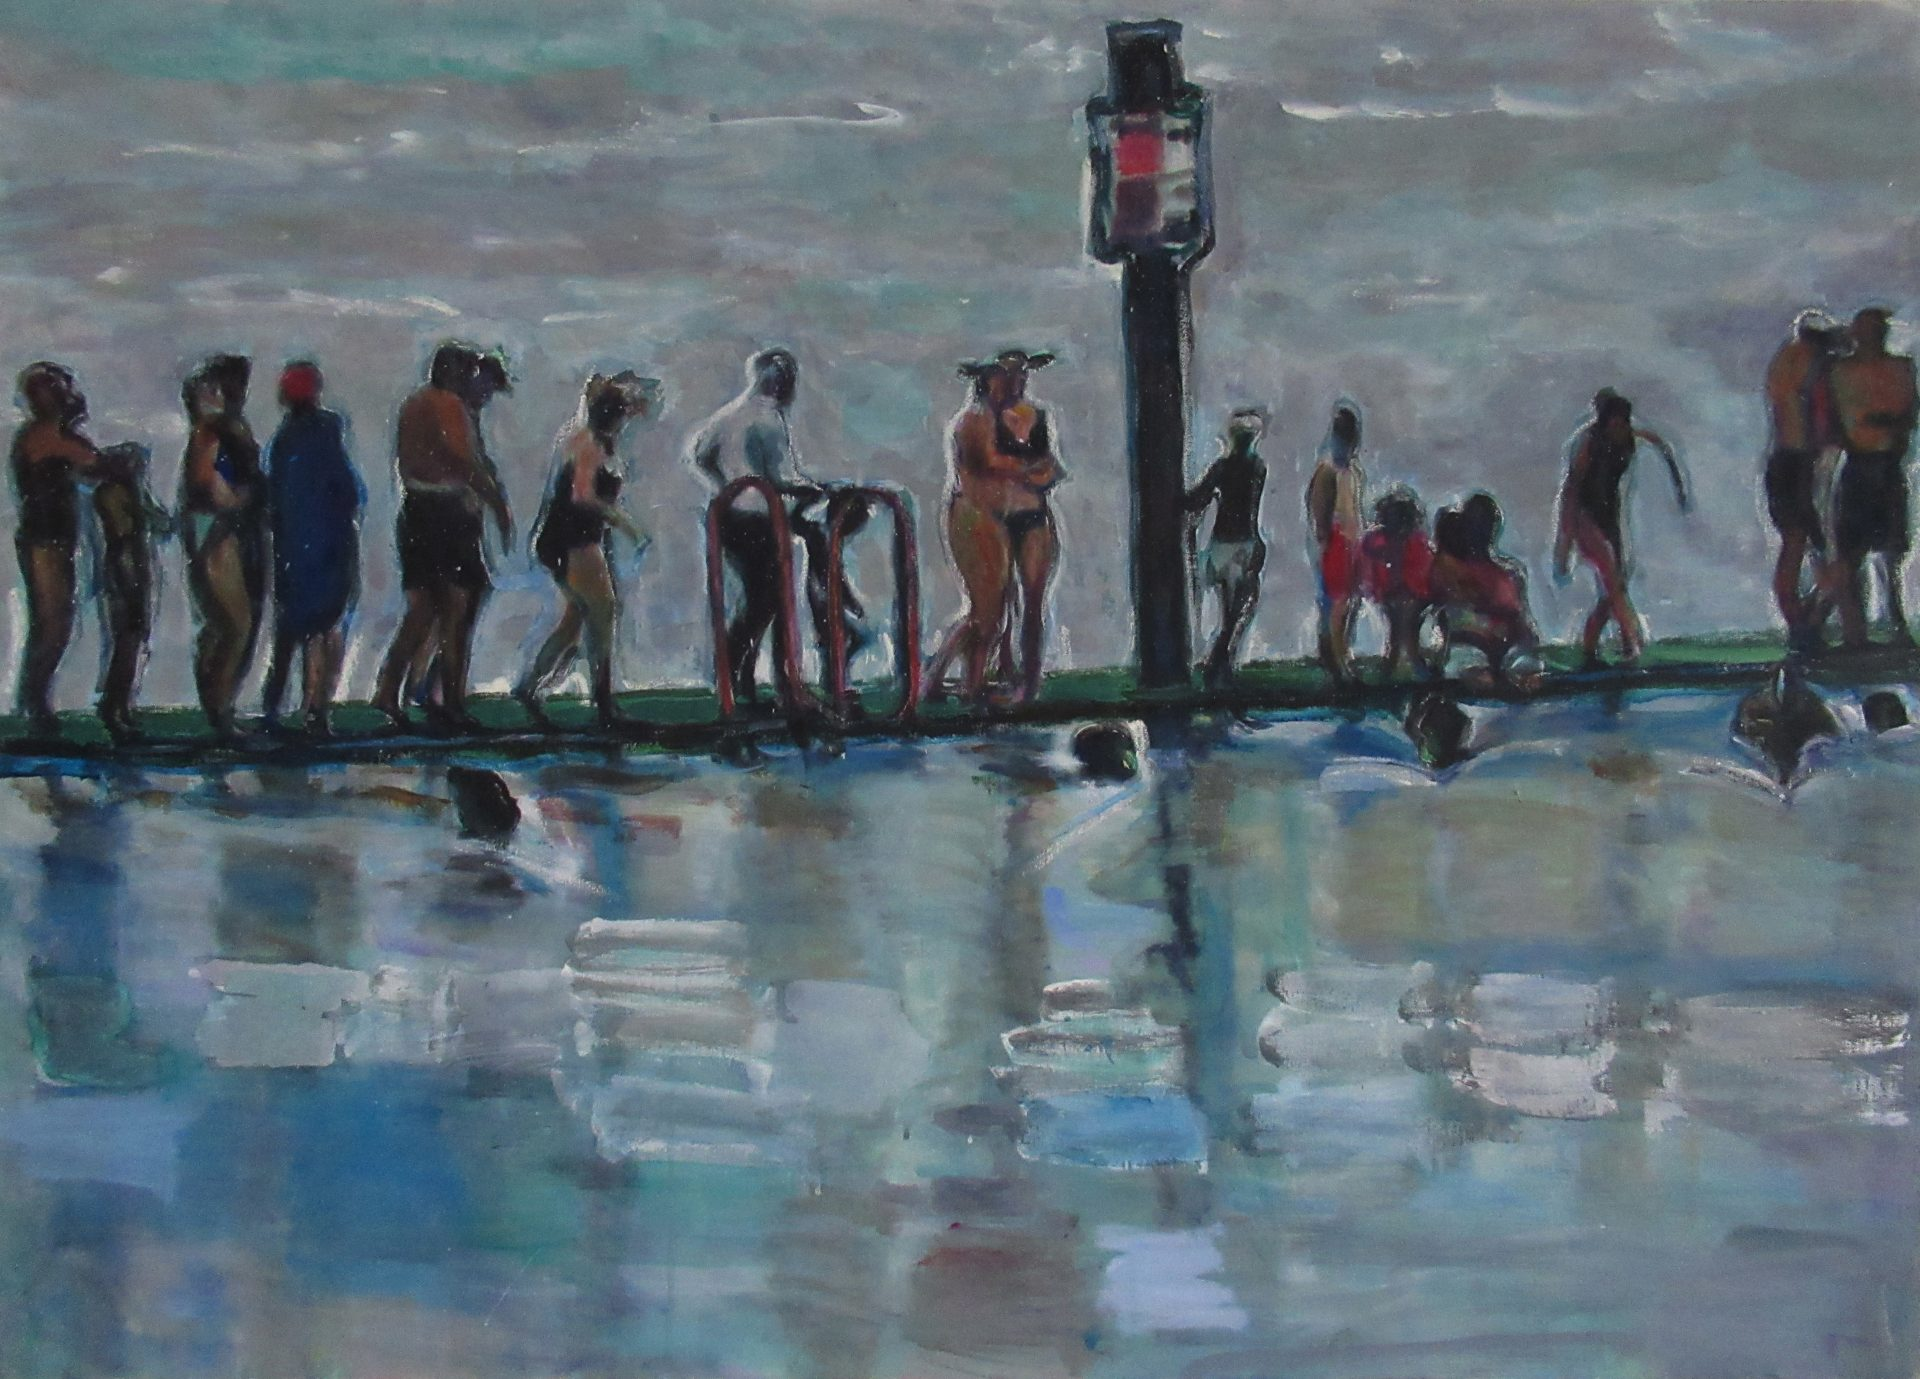 Lee Williams, New Year swimmers. Oil and Acrylic on canvas, at Pie Factory Margate